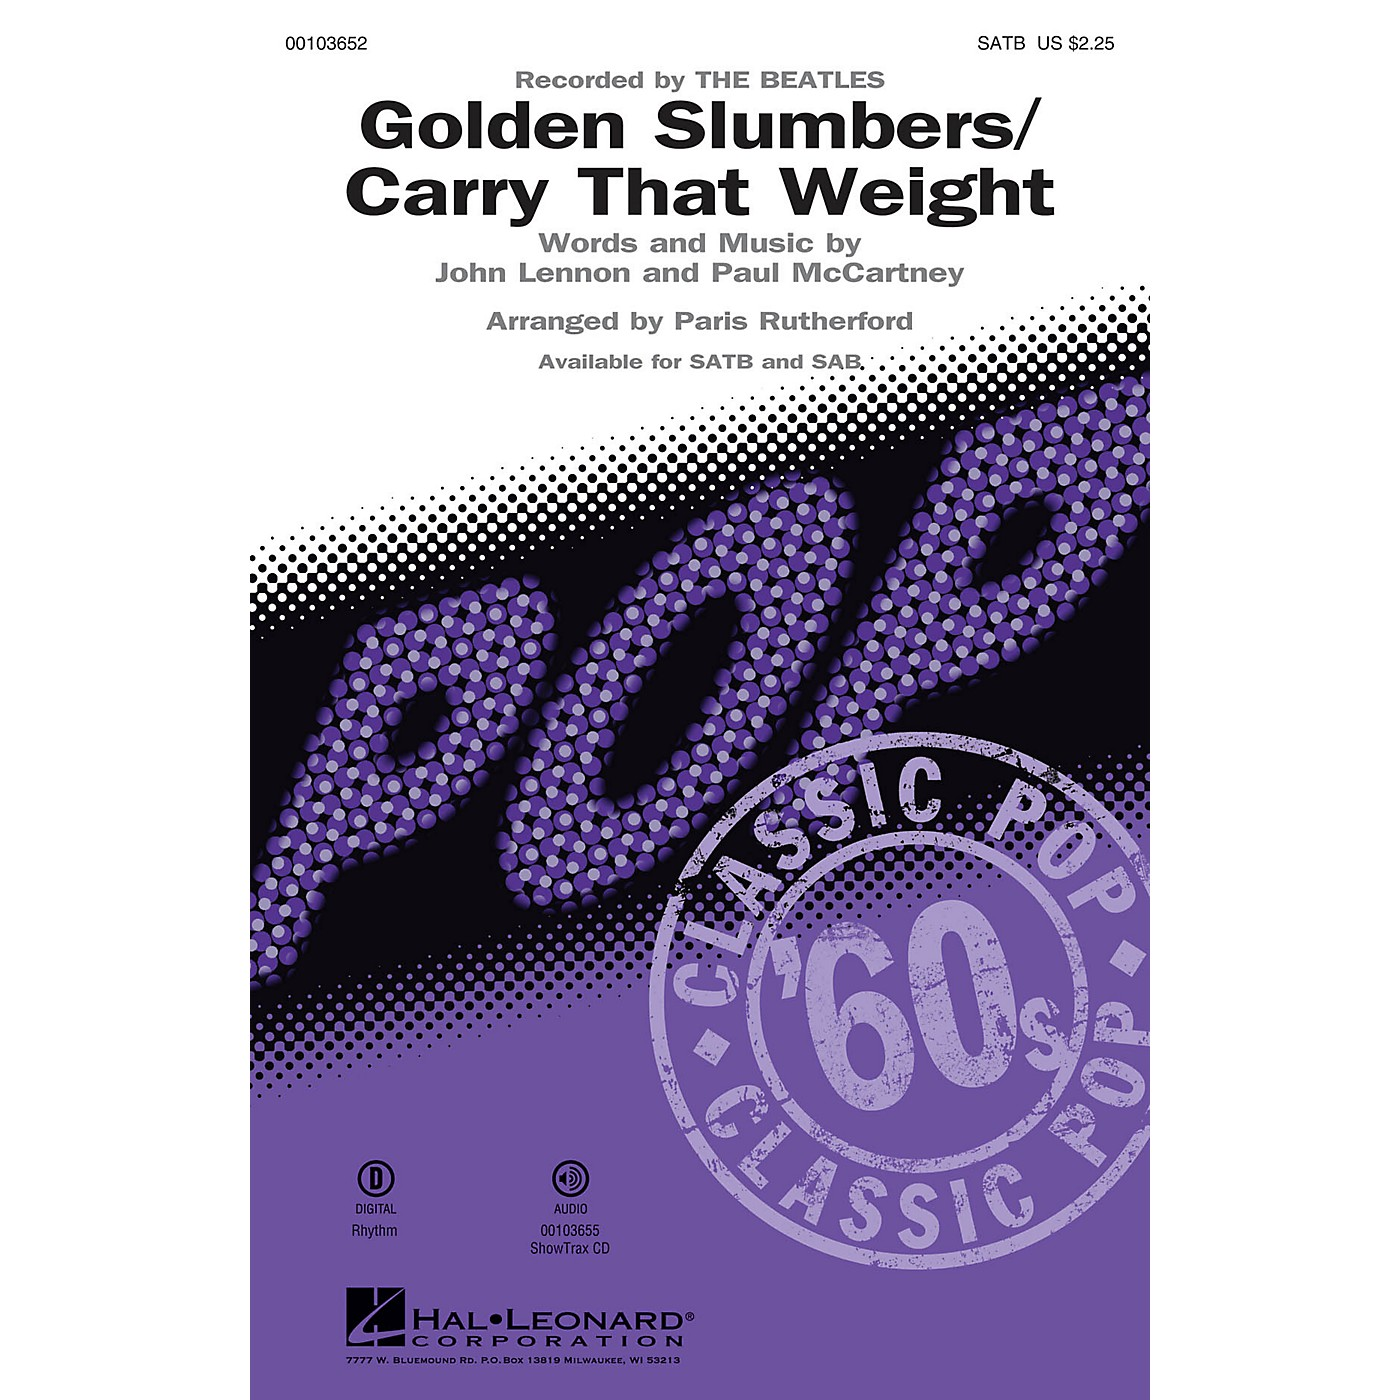 Hal Leonard Golden Slumbers/Carry That Weight (SATB) SATB by The Beatles arranged by Paris Rutherford thumbnail